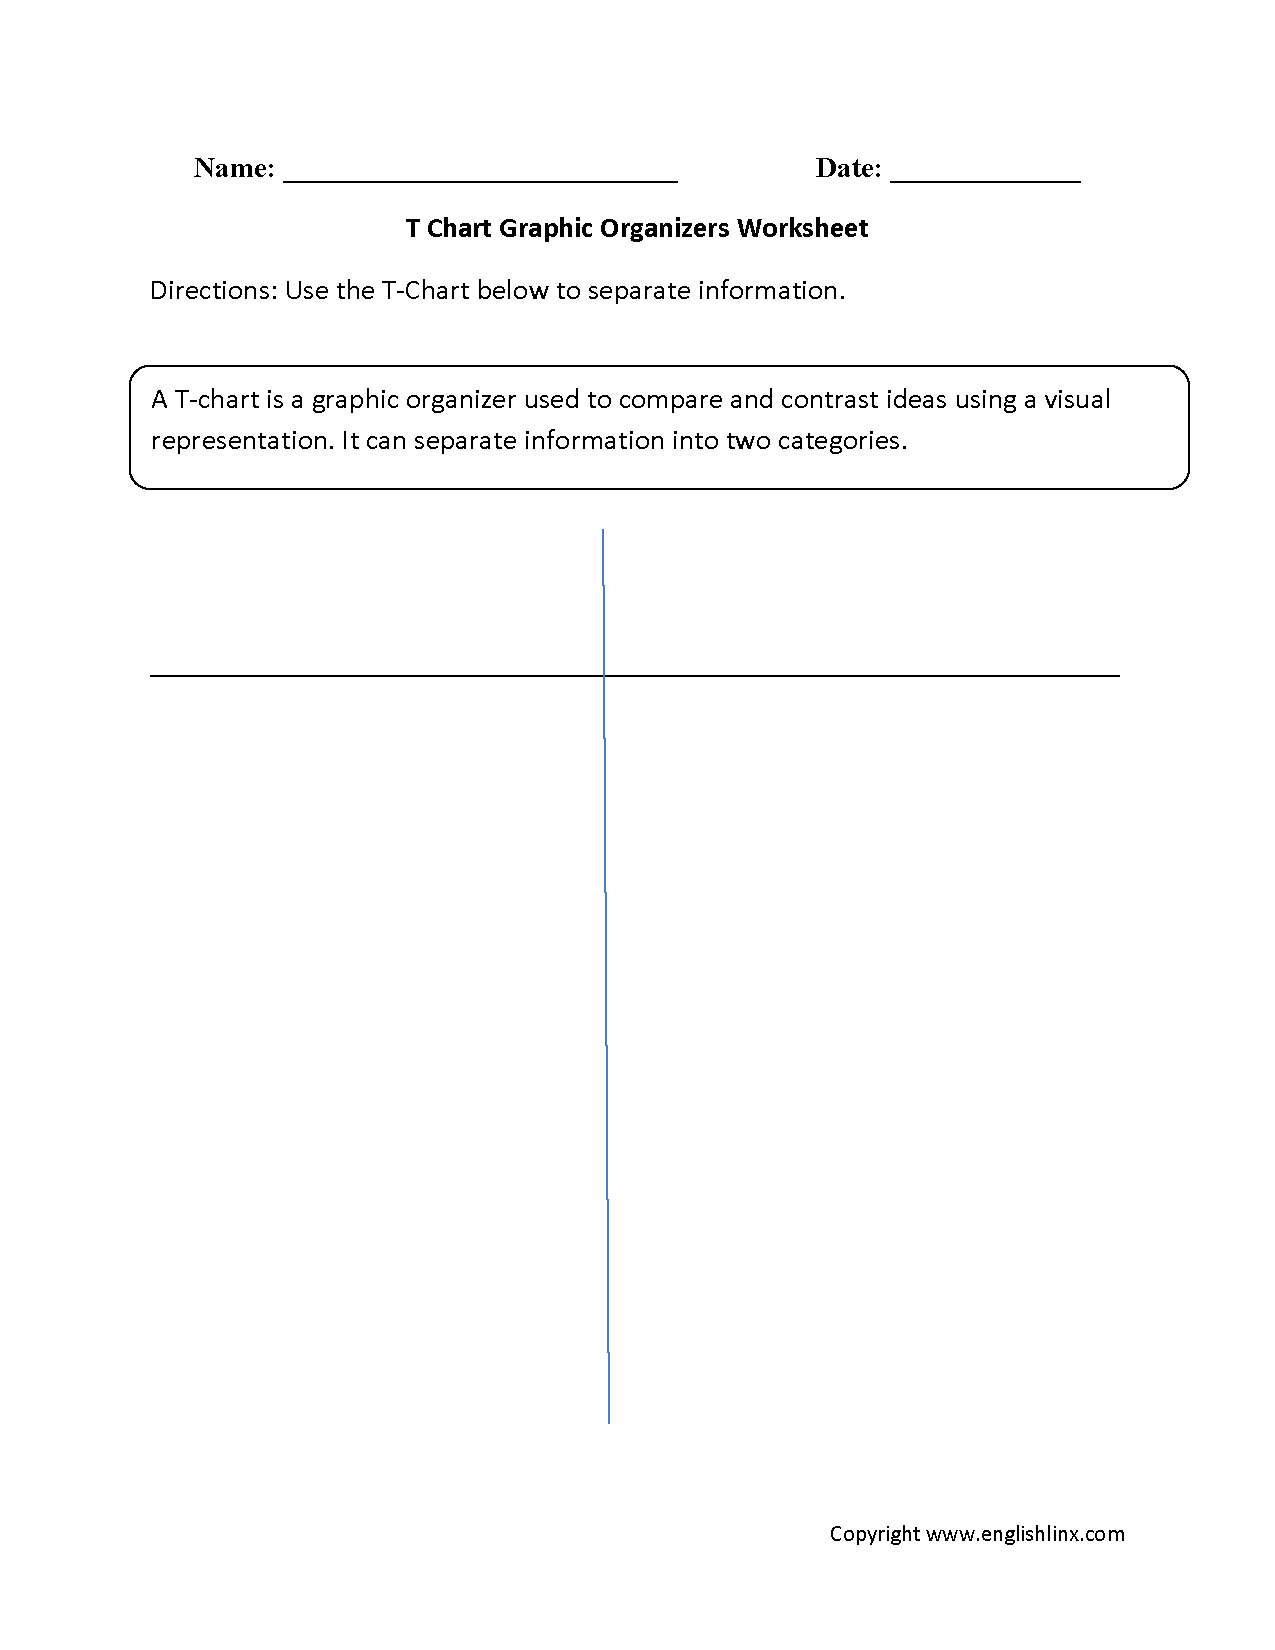 Englishlinx | Graphic Organizers Worksheets - Free Printable Compare And Contrast Graphic Organizer